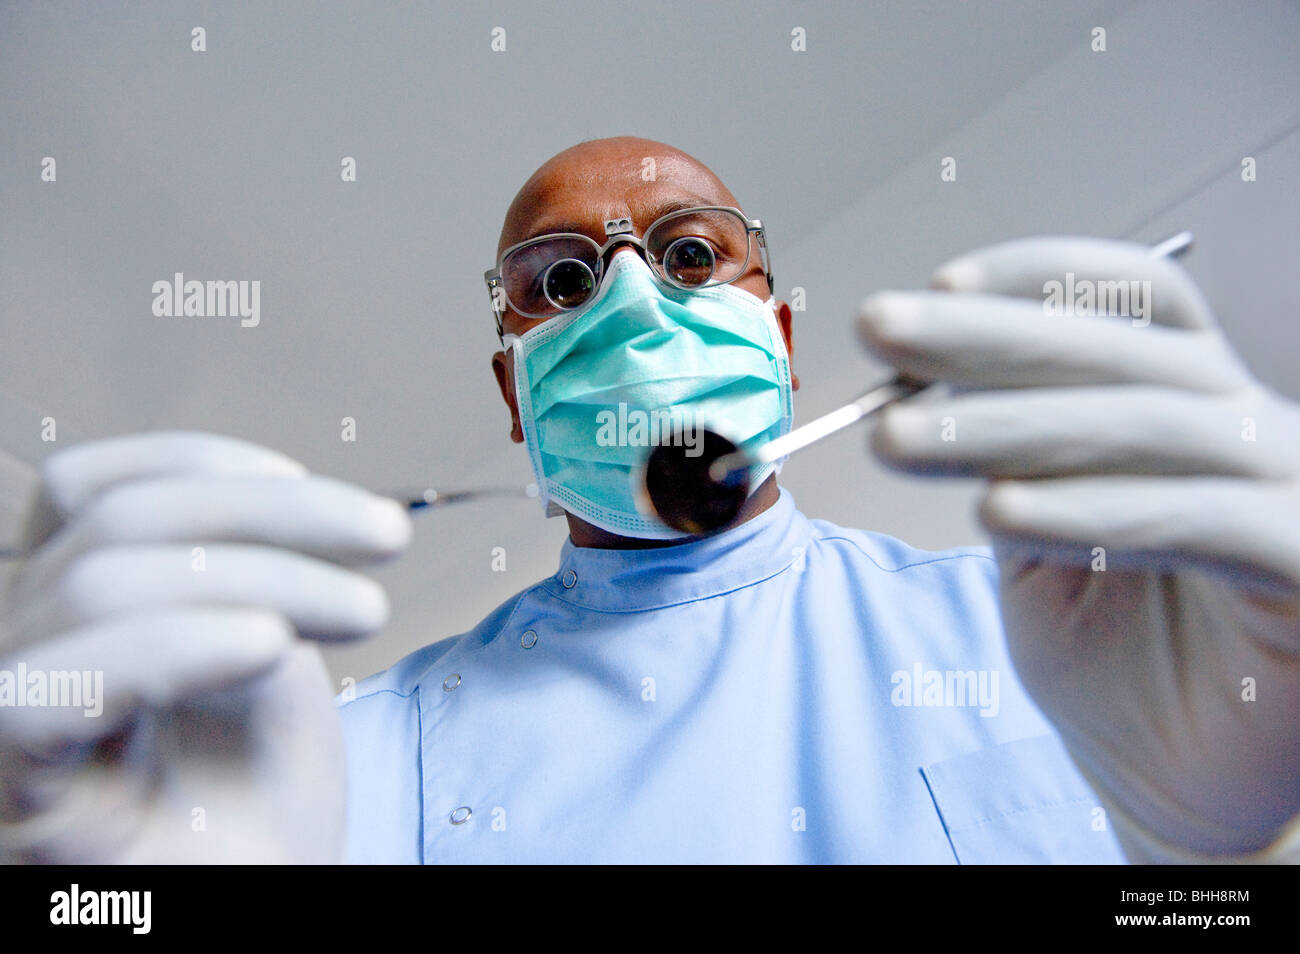 Dentist  in scary, frightening pose - Stock Image